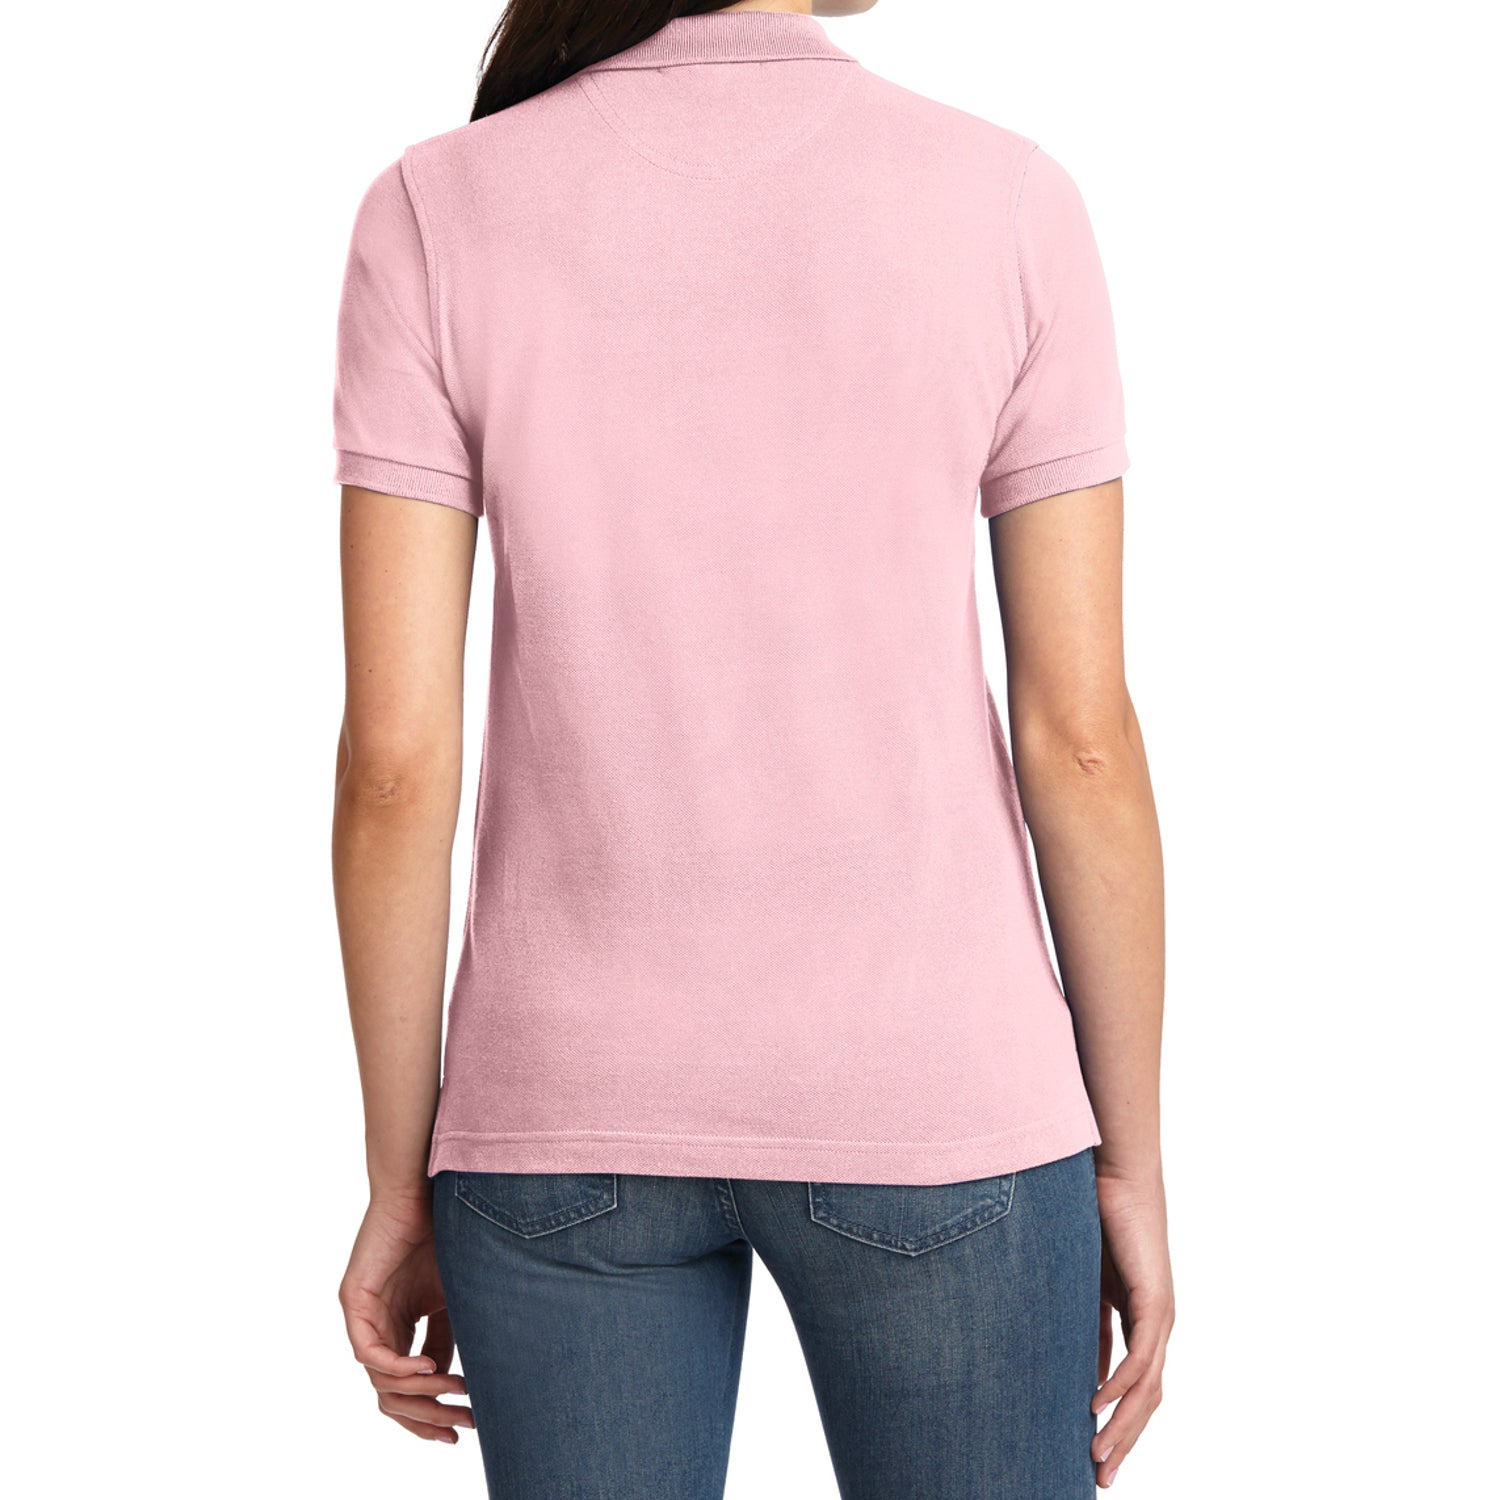 Mafoose Women's Heavyweight Cotton Pique Polo Shirt Light Pink-Back